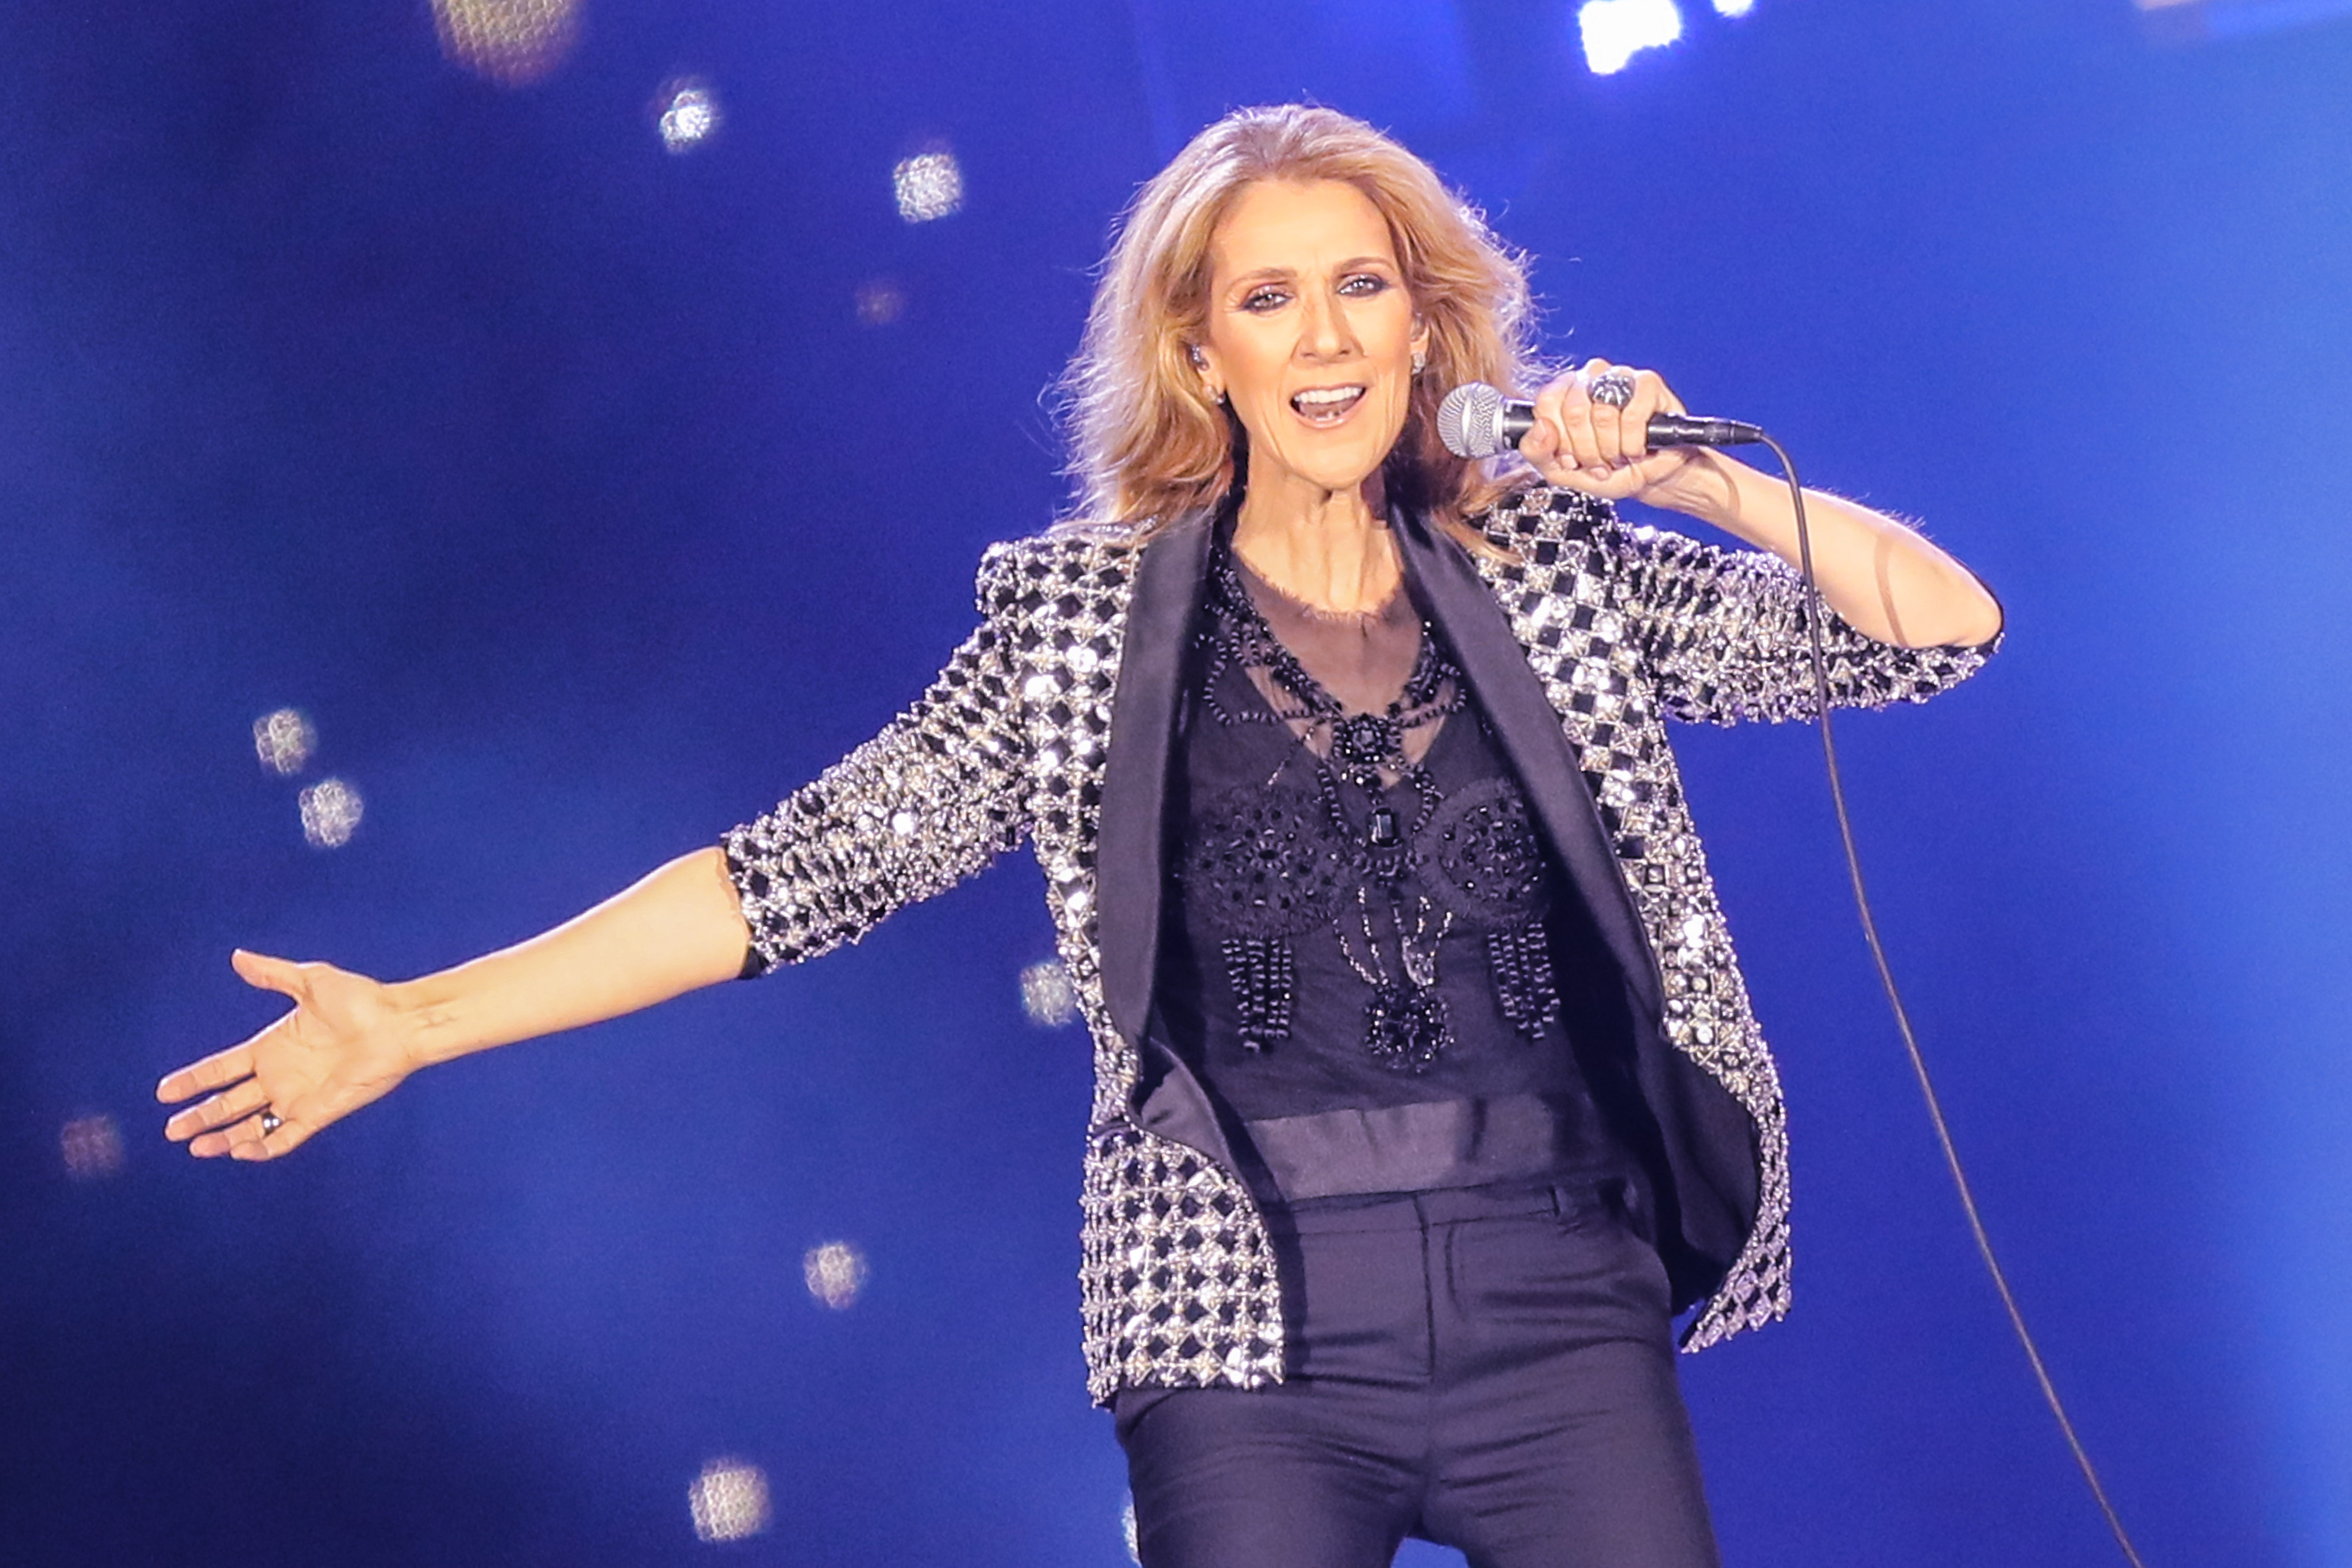 Céline Dion has a new gender-neutral clothing line for kids